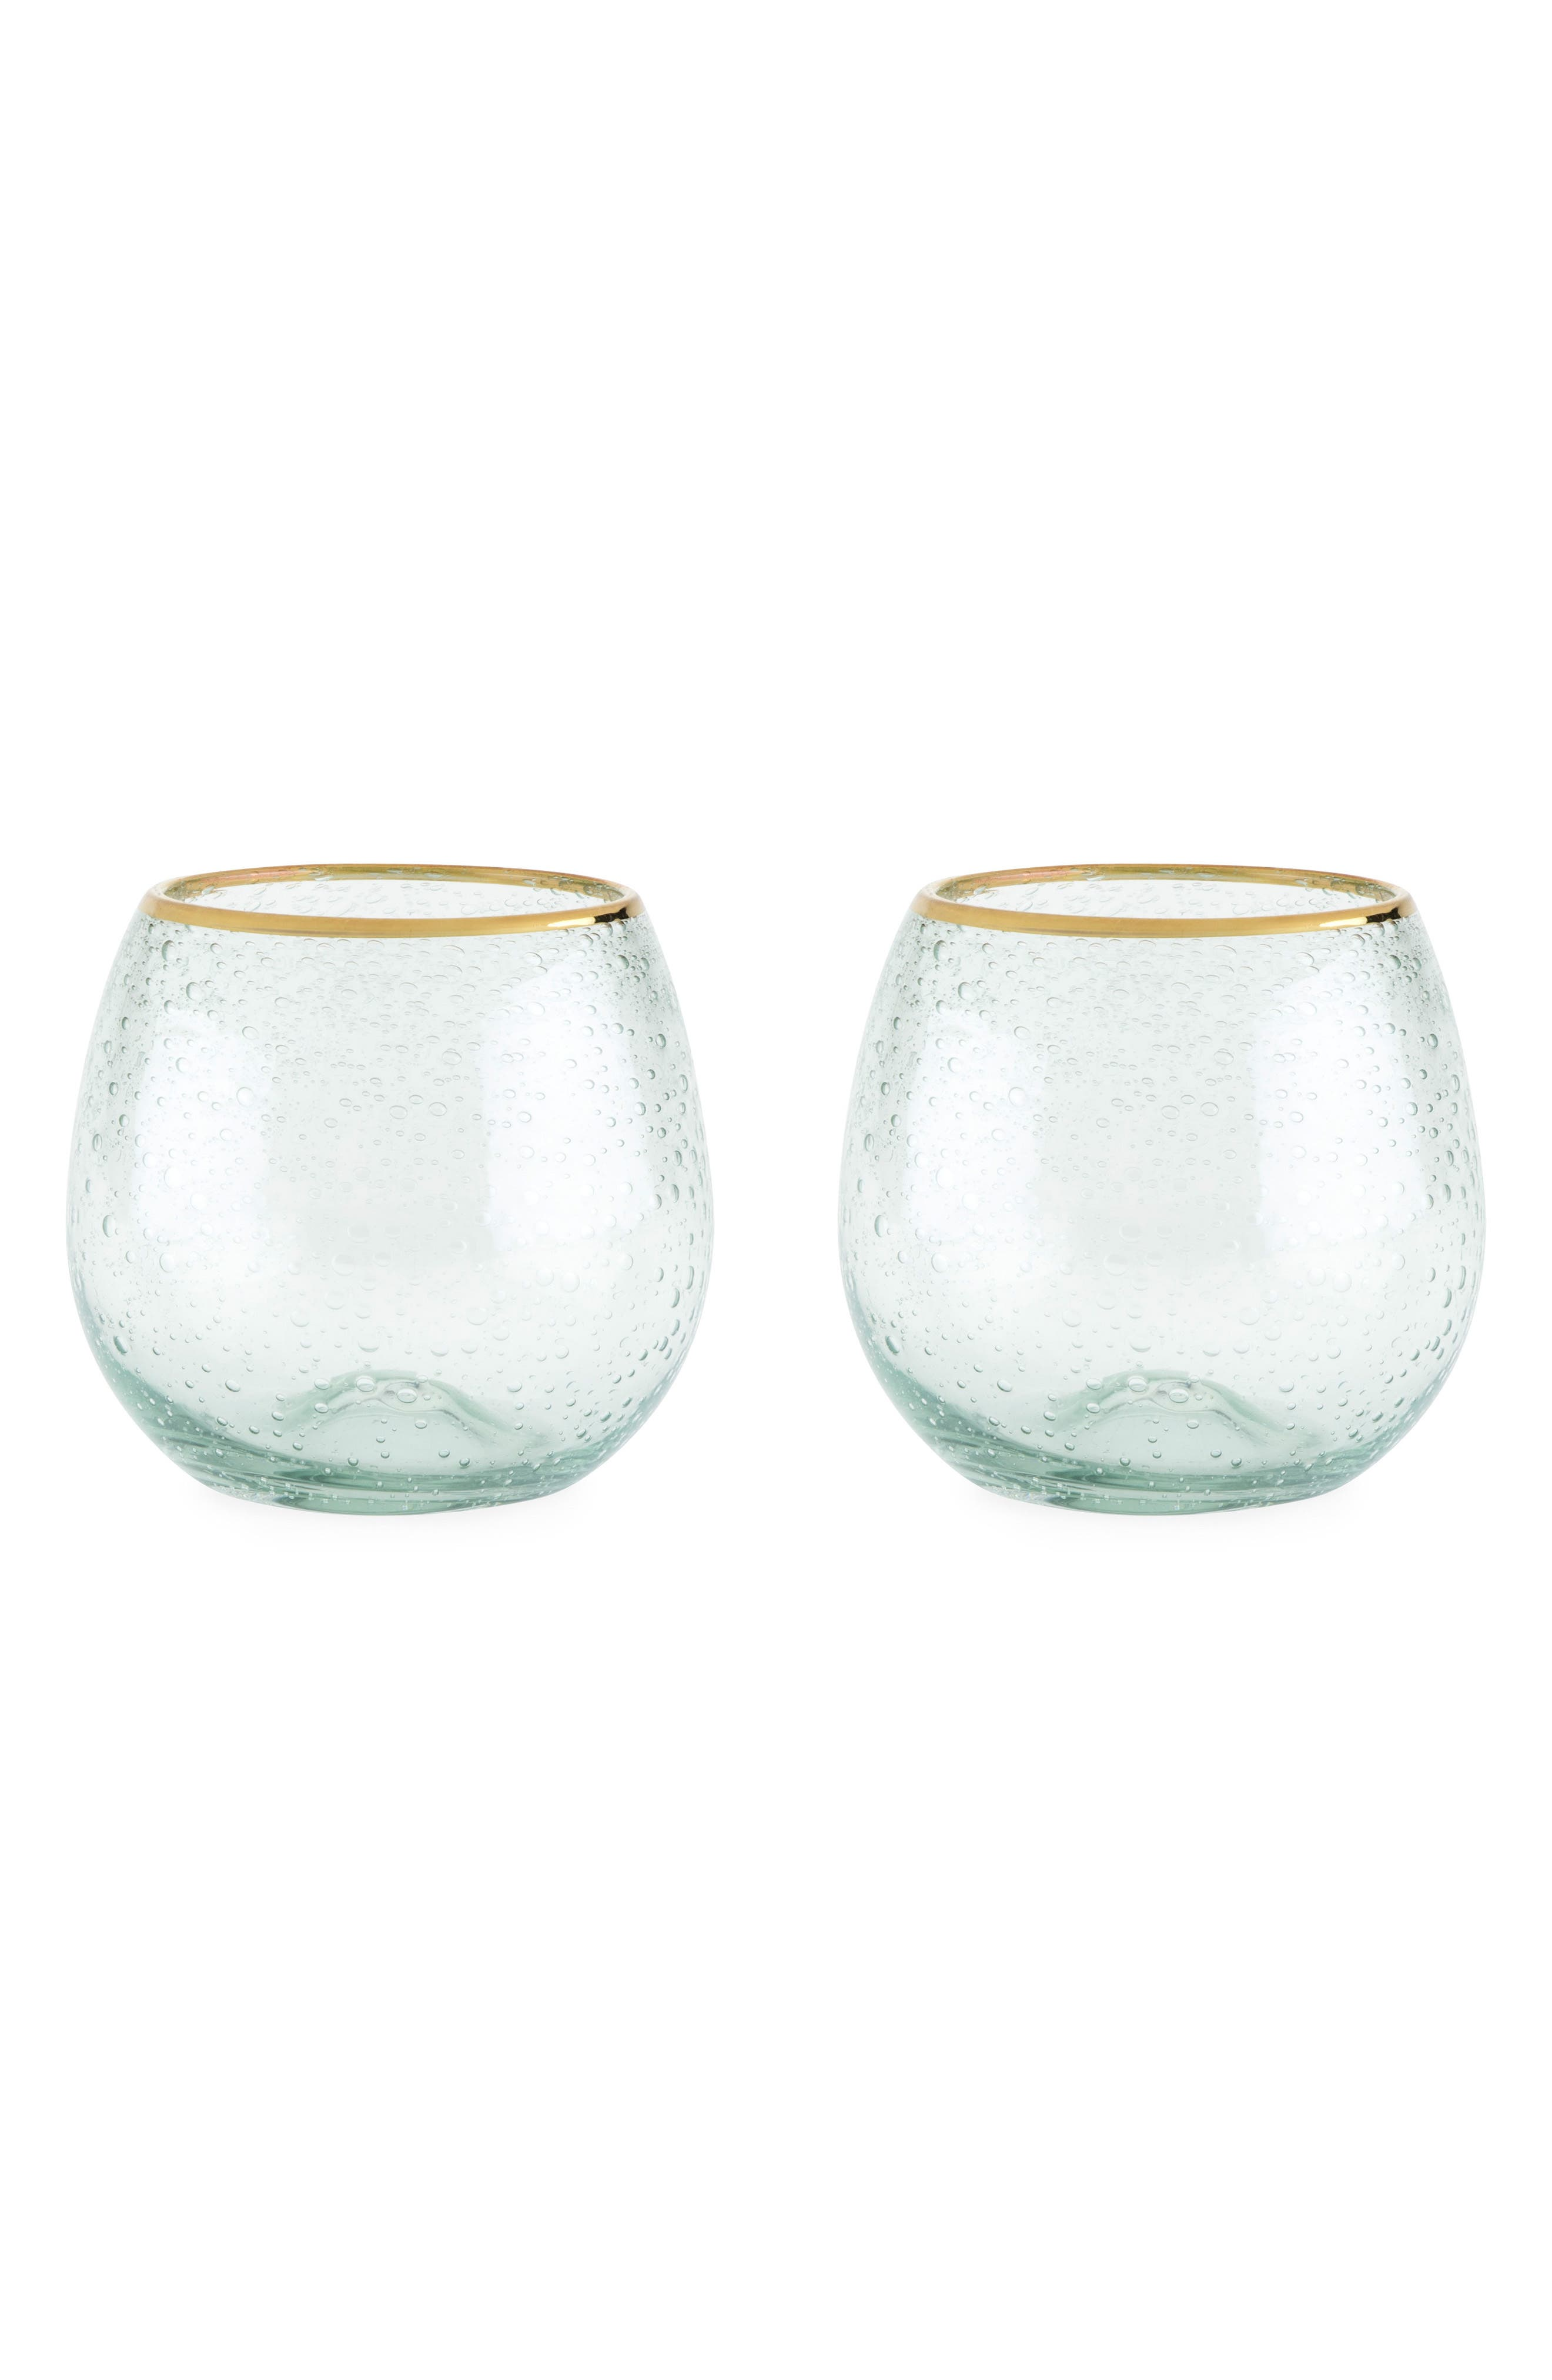 Set of 2 Gold Rim Stemless Wine Glasses,                             Main thumbnail 1, color,                             100